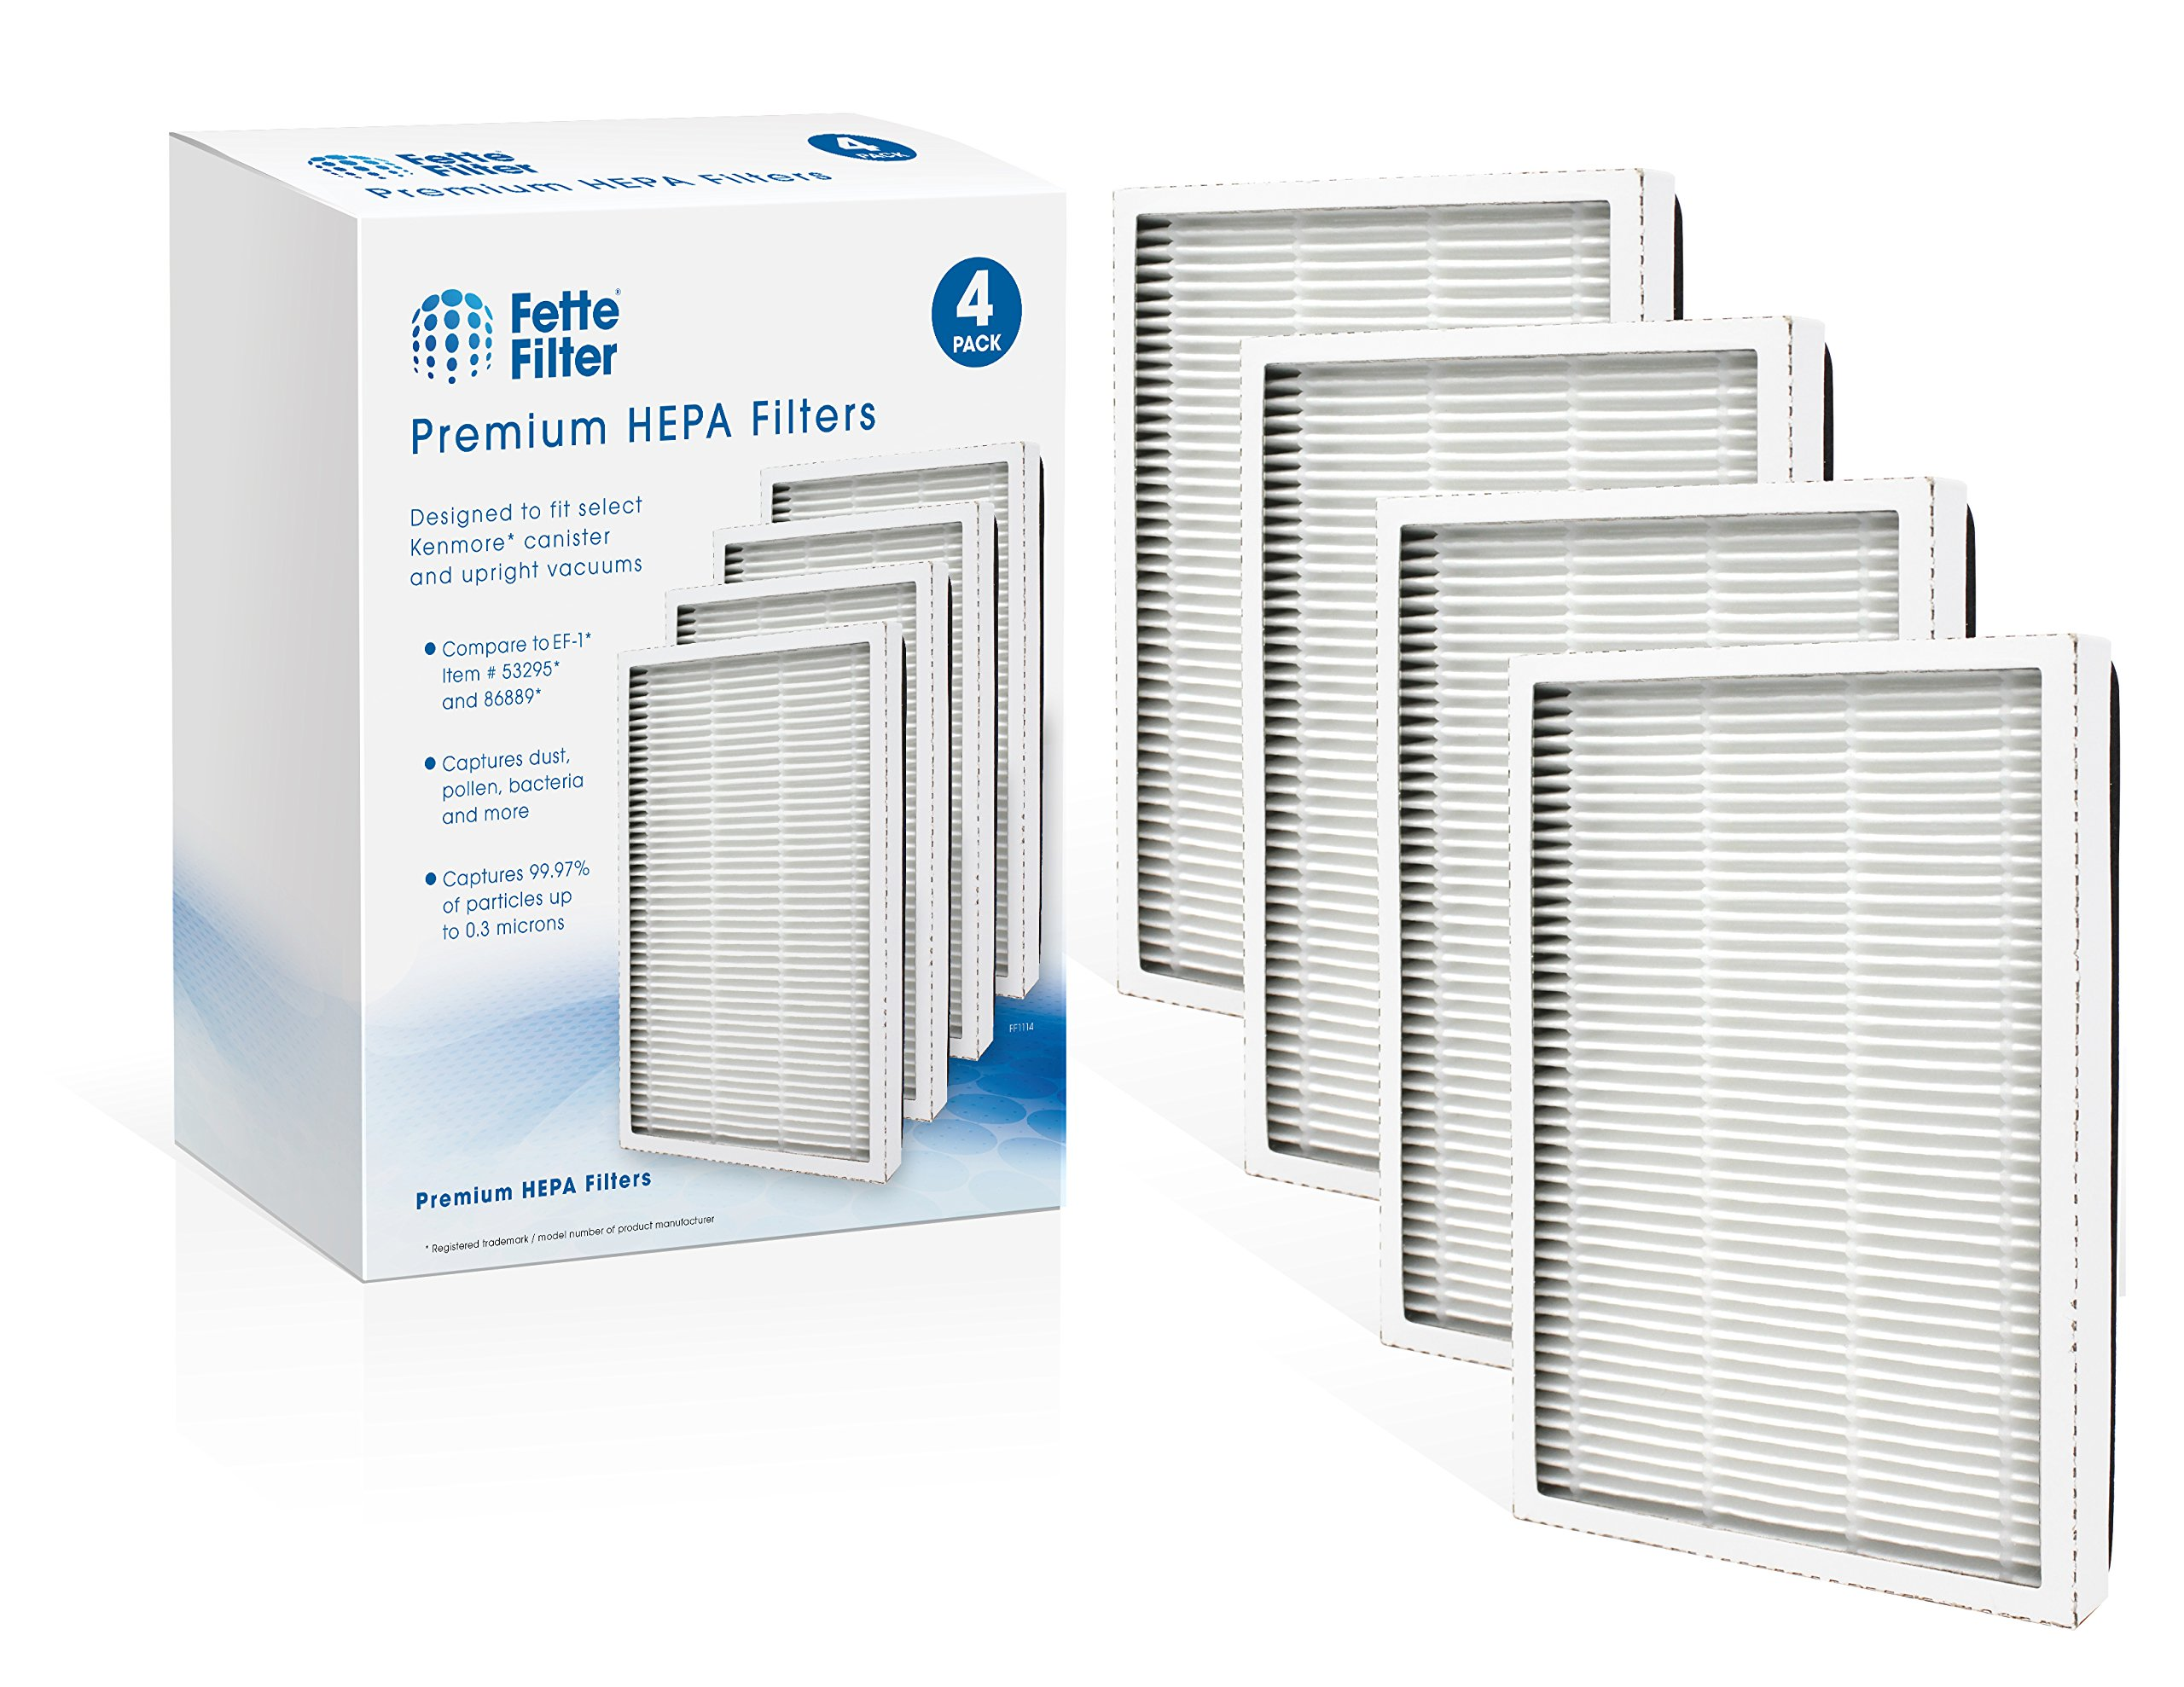 Fette Filter - Exhaust HEPA Vacuum Filter Compatible with EF-1 Sears Kenmore, (Compares to 86889) and Also Compatible with Panasonic (Compares to MC-V199H) (Pack of 4) by Fette Filter